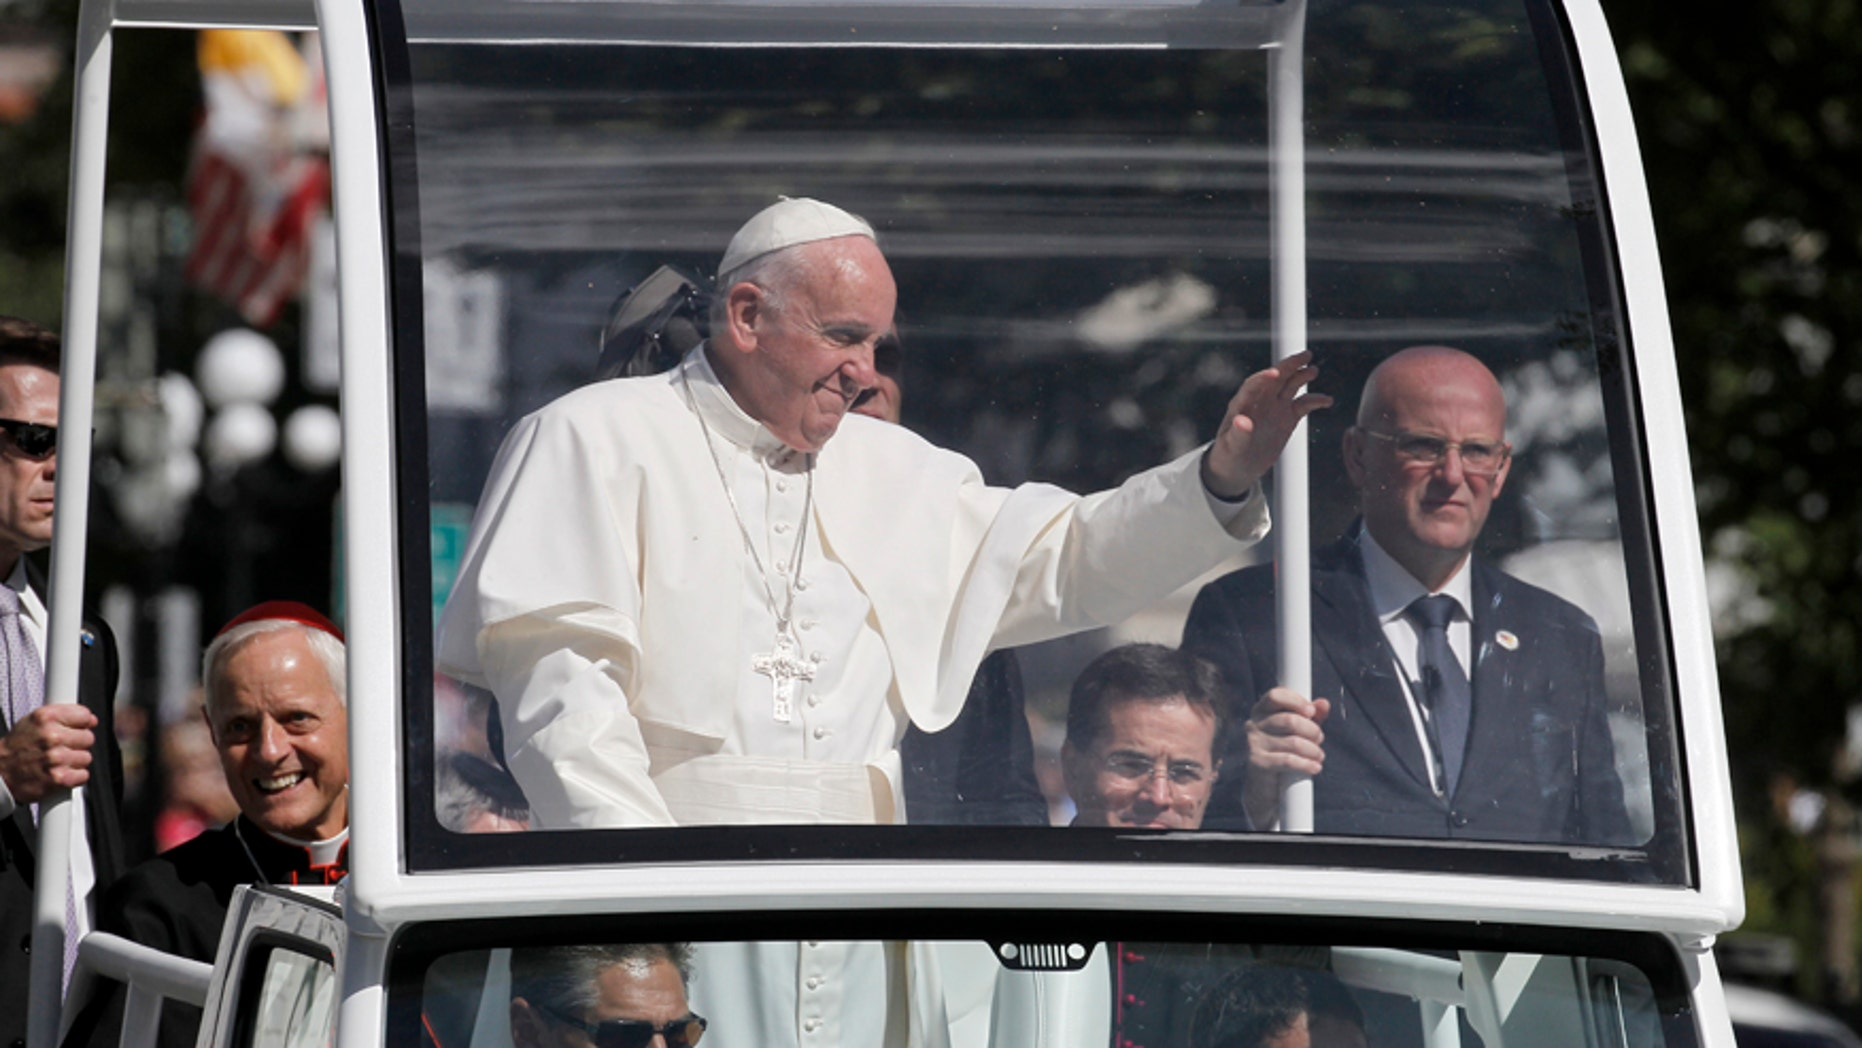 Pope Francis waves to the crowd from the popemobile during a parade in Washington, Wednesday, Sept. 23, 2015.